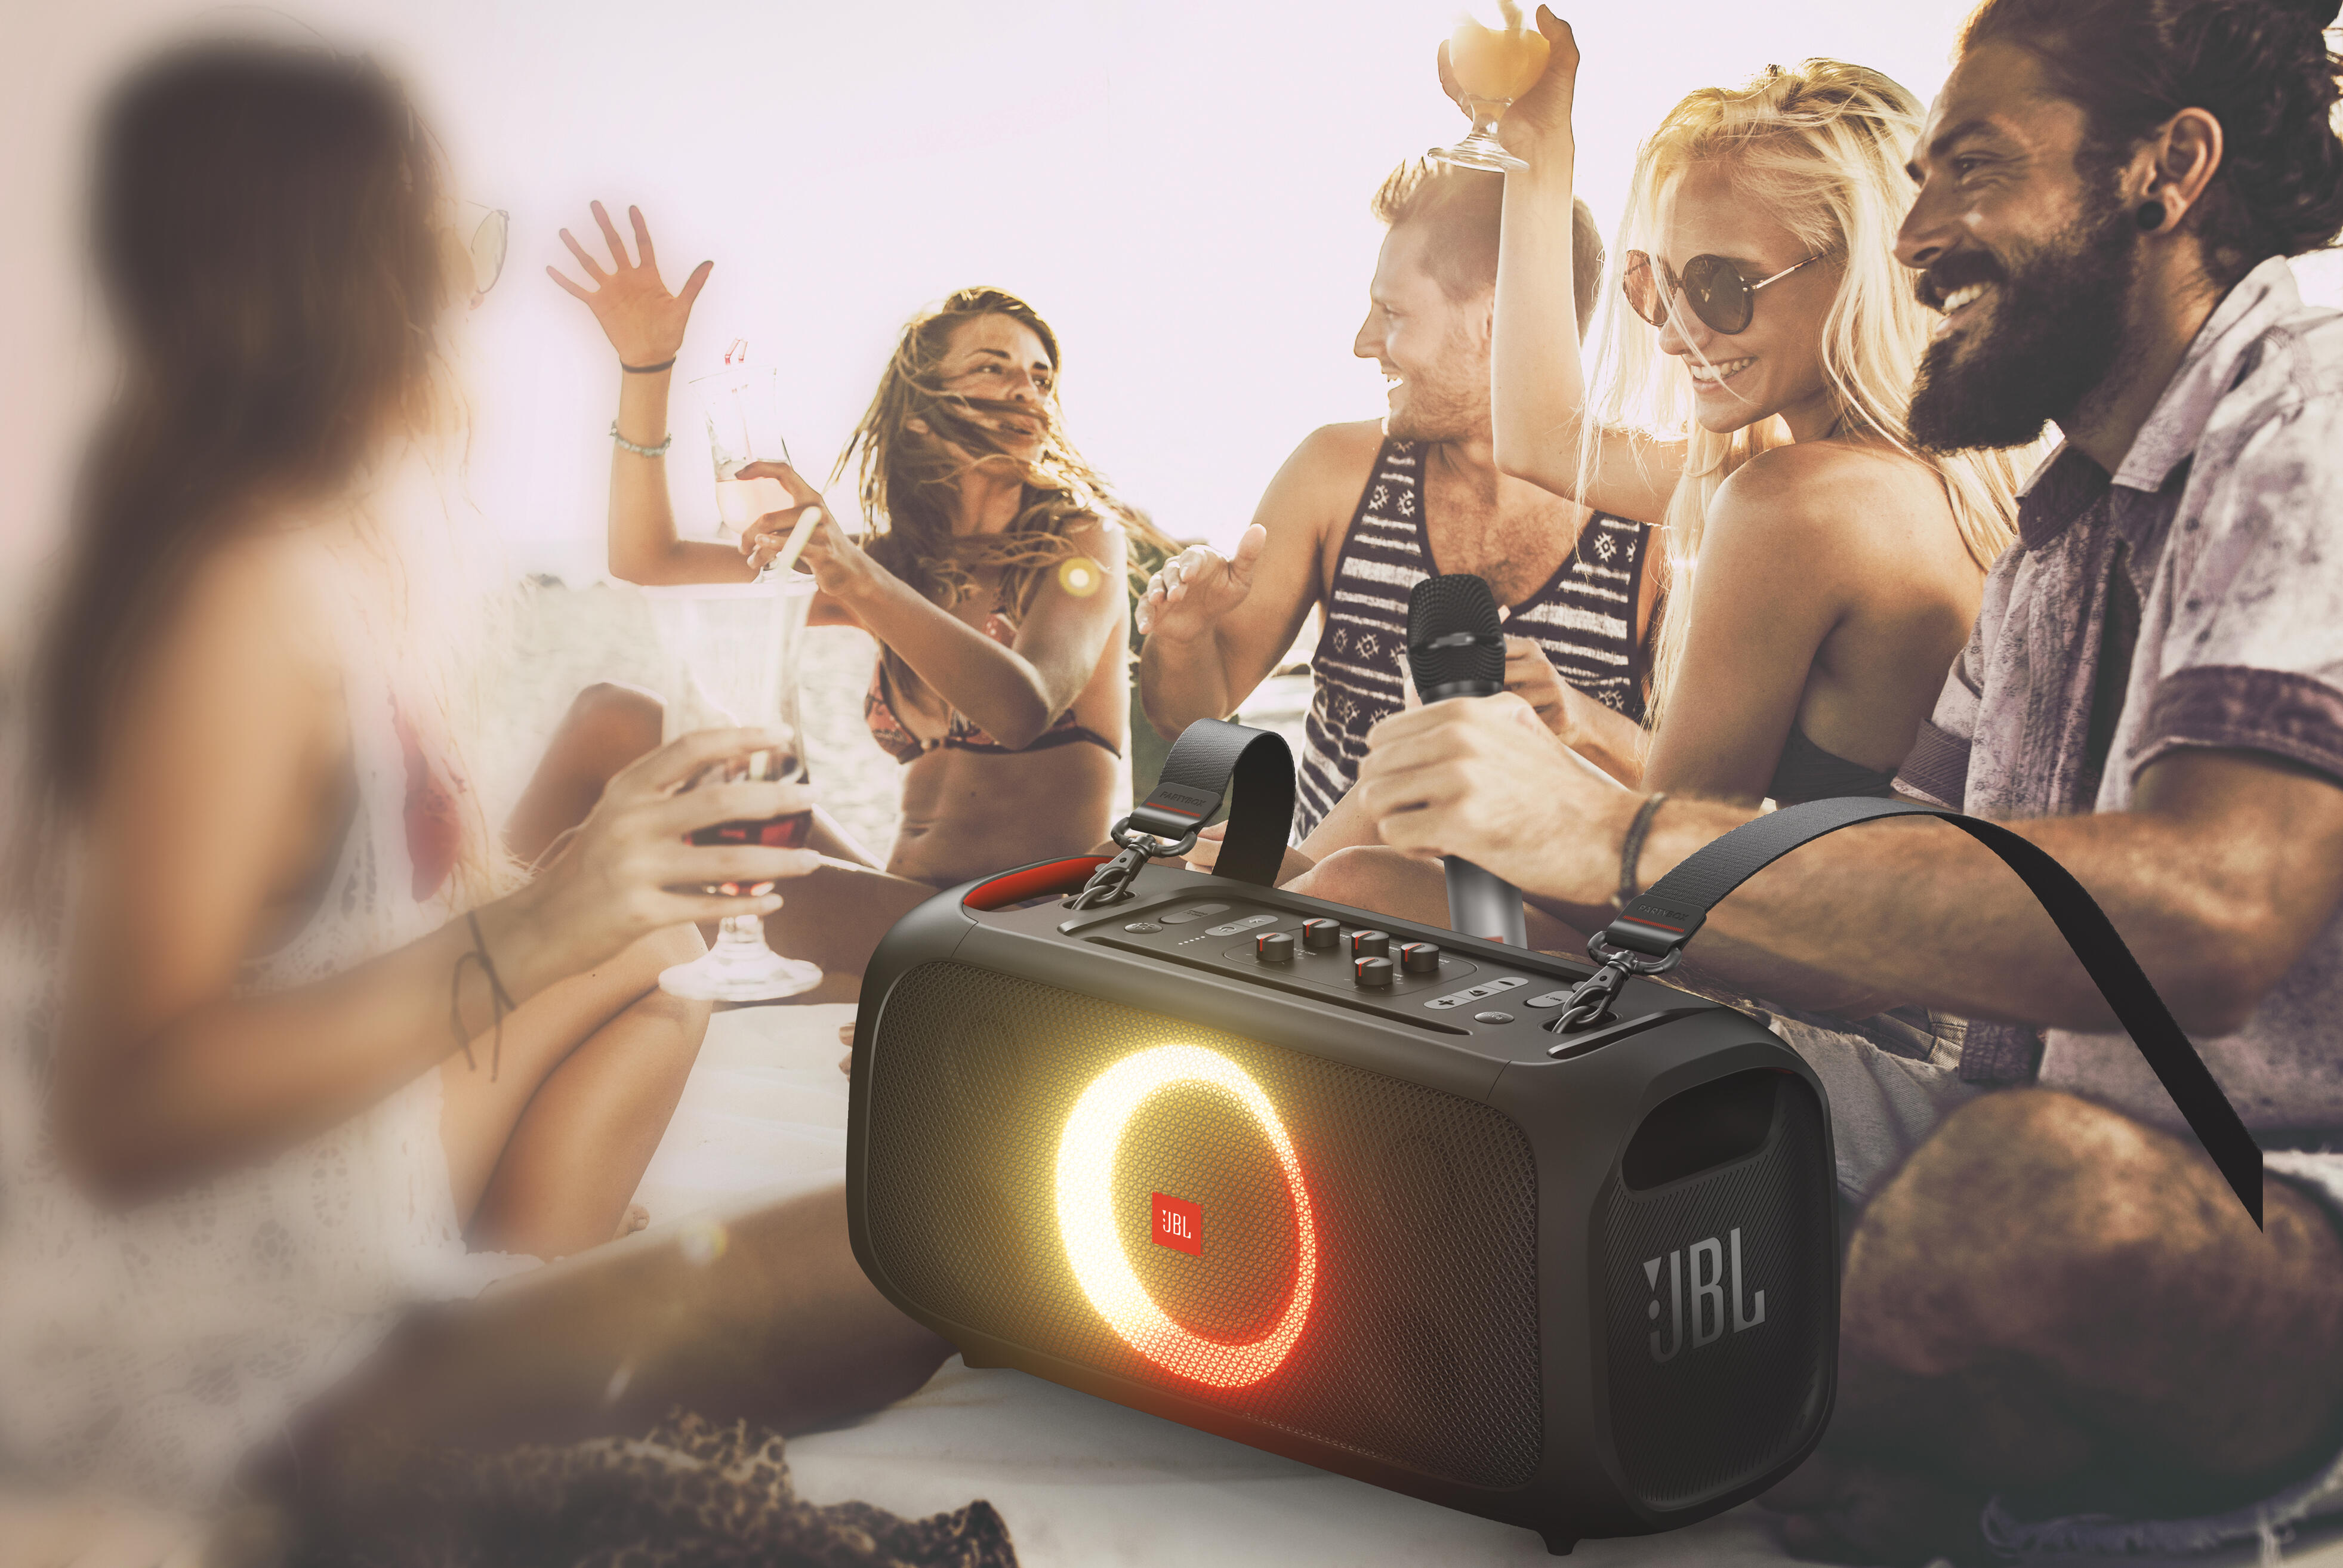 ch-jbl-party-box-on-the-go-backlifestyle-20200601-rt-v1